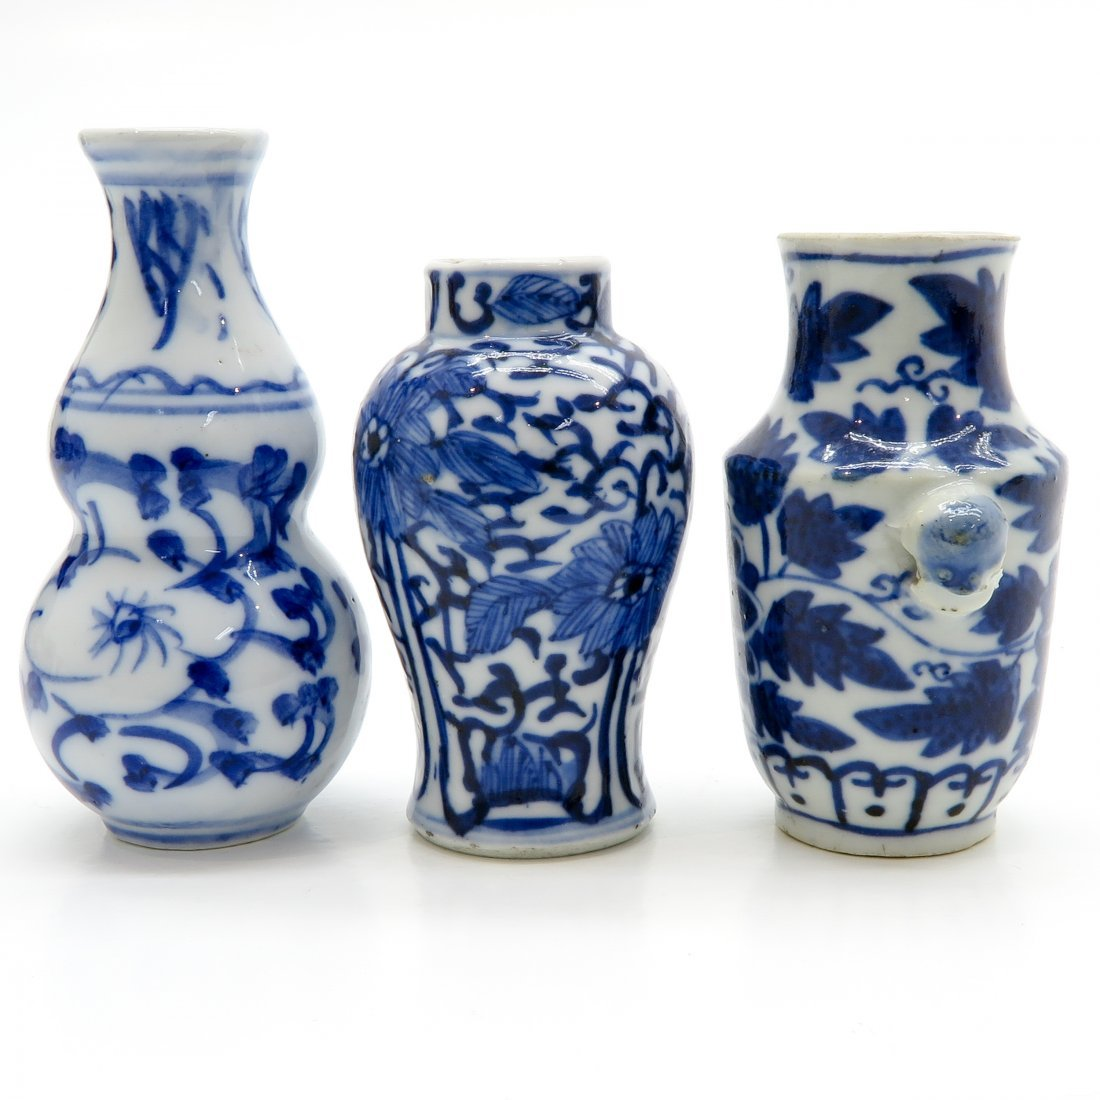 Lot of China Porcelain Miniature Vases - 4